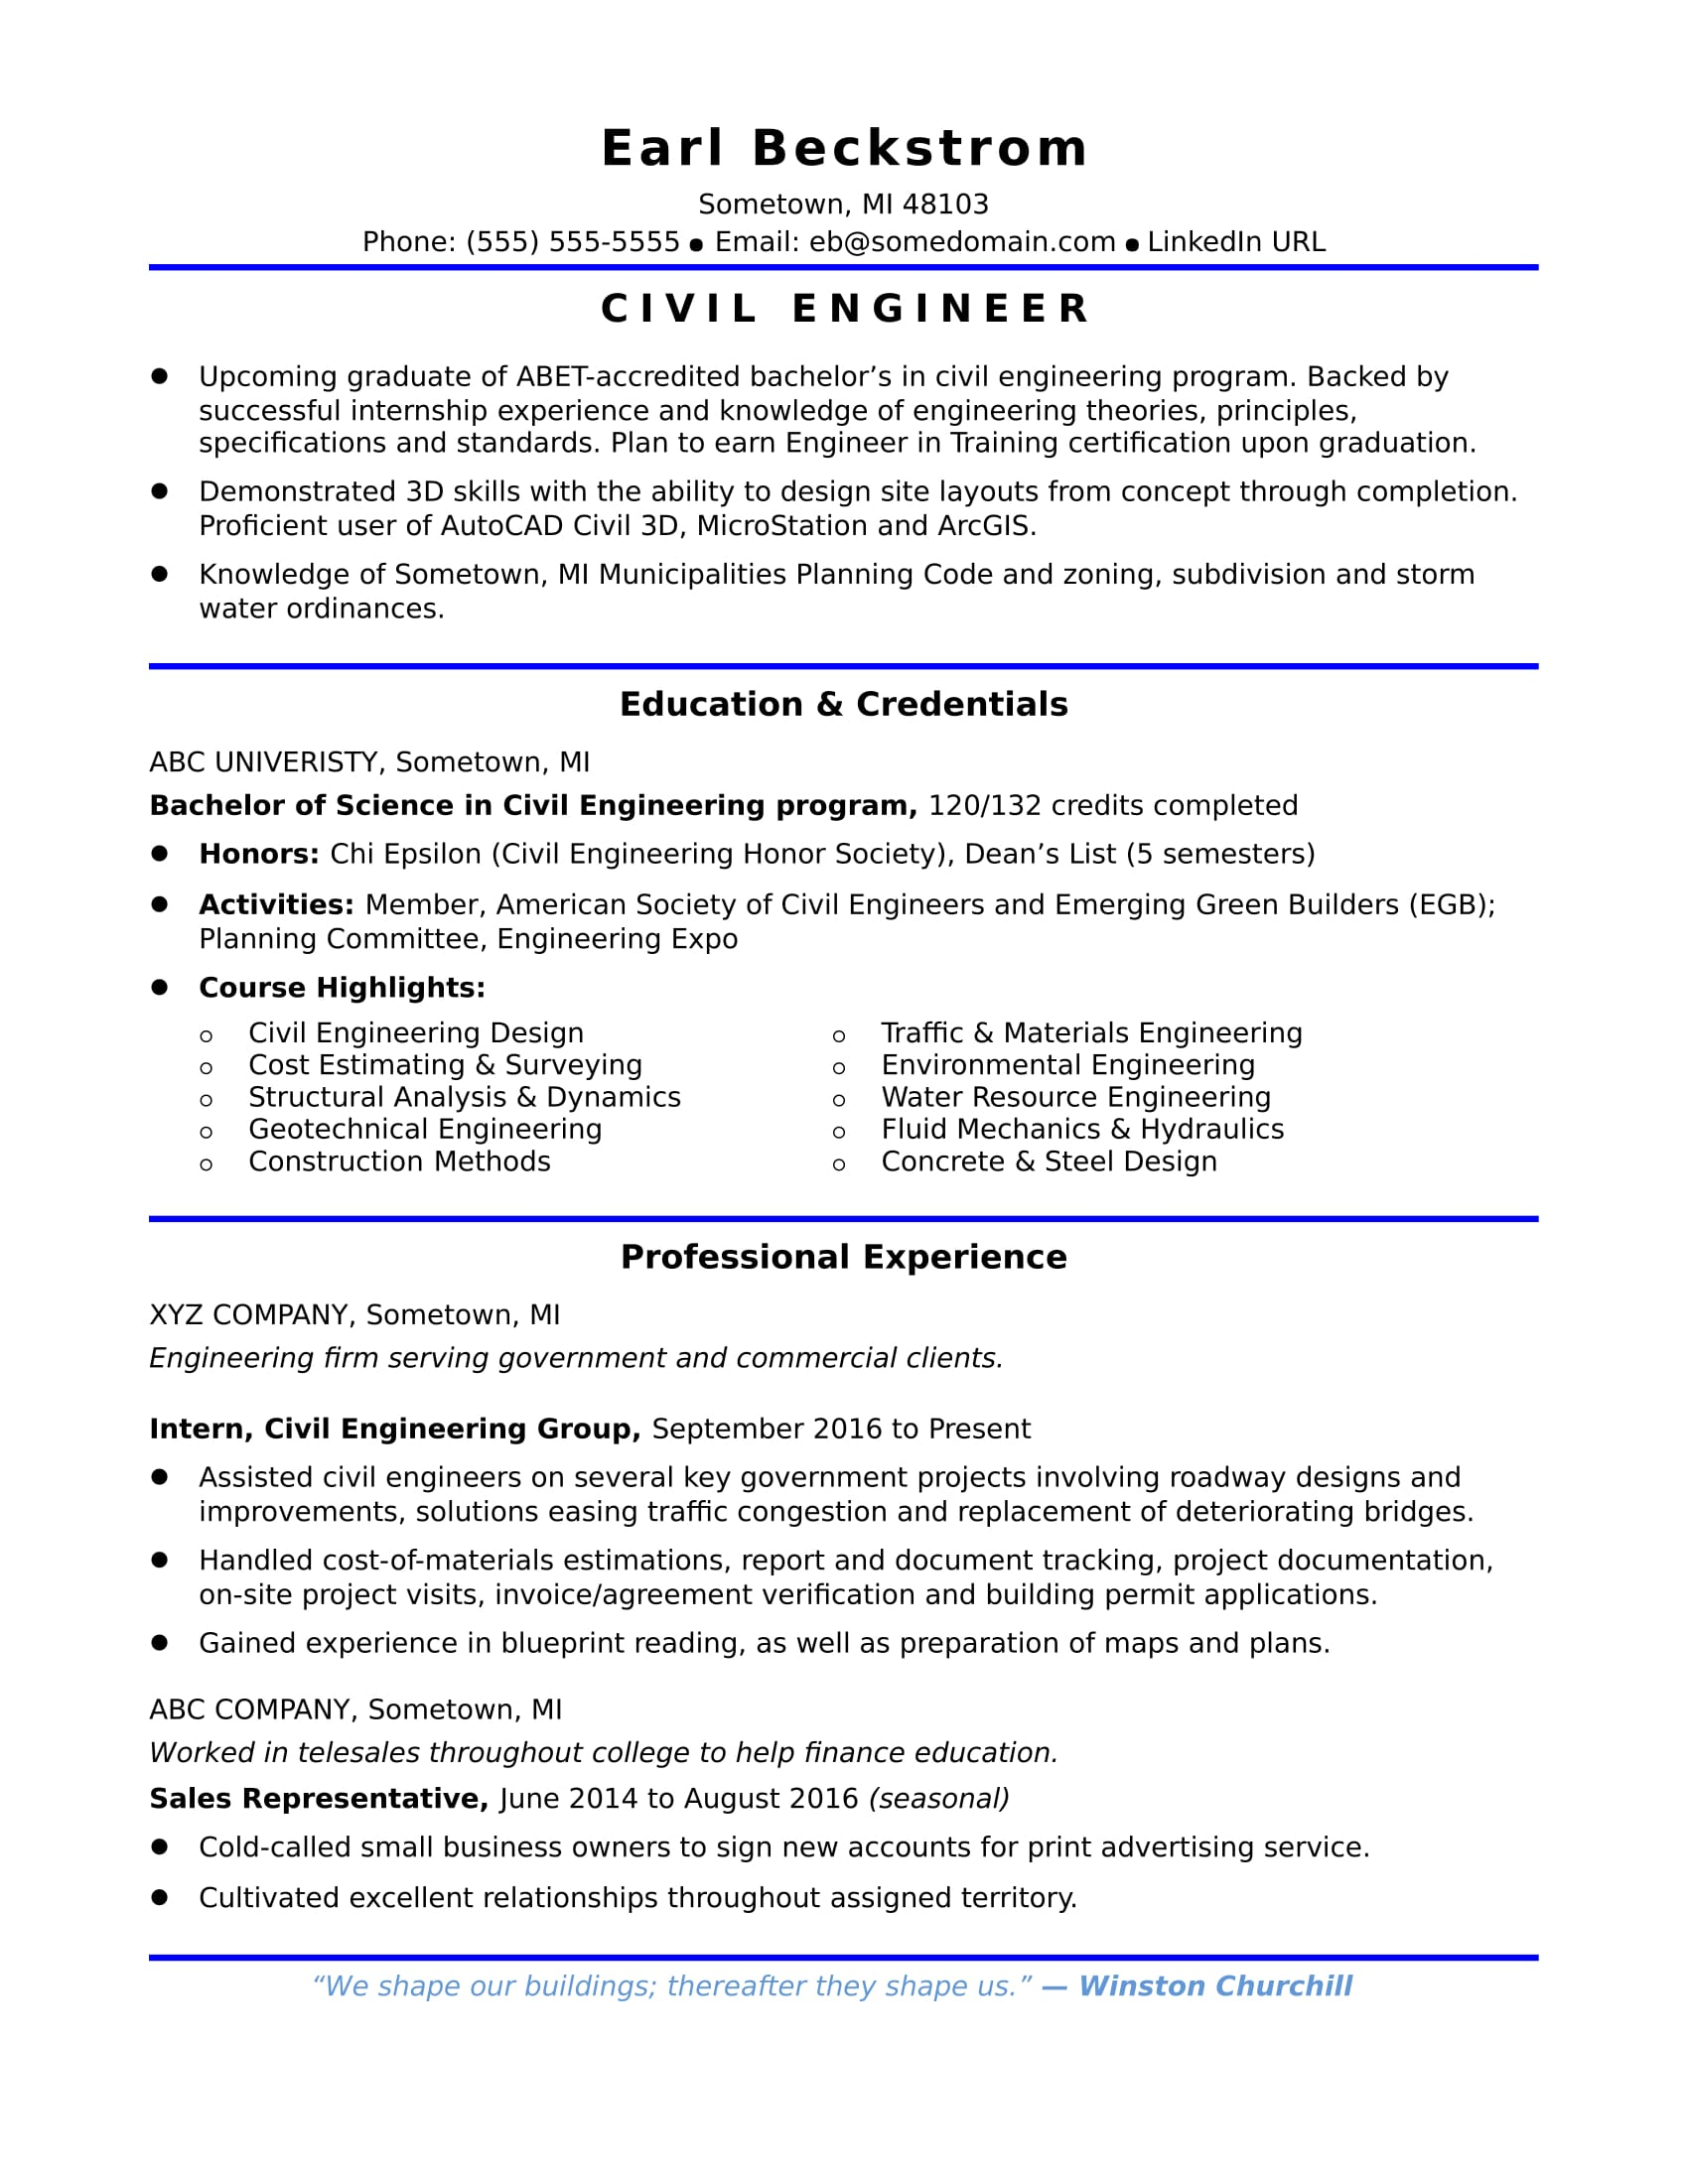 Resume Objective For Civil Engineering Student Sample Resume For An Entry Level Civil Engineer Monster